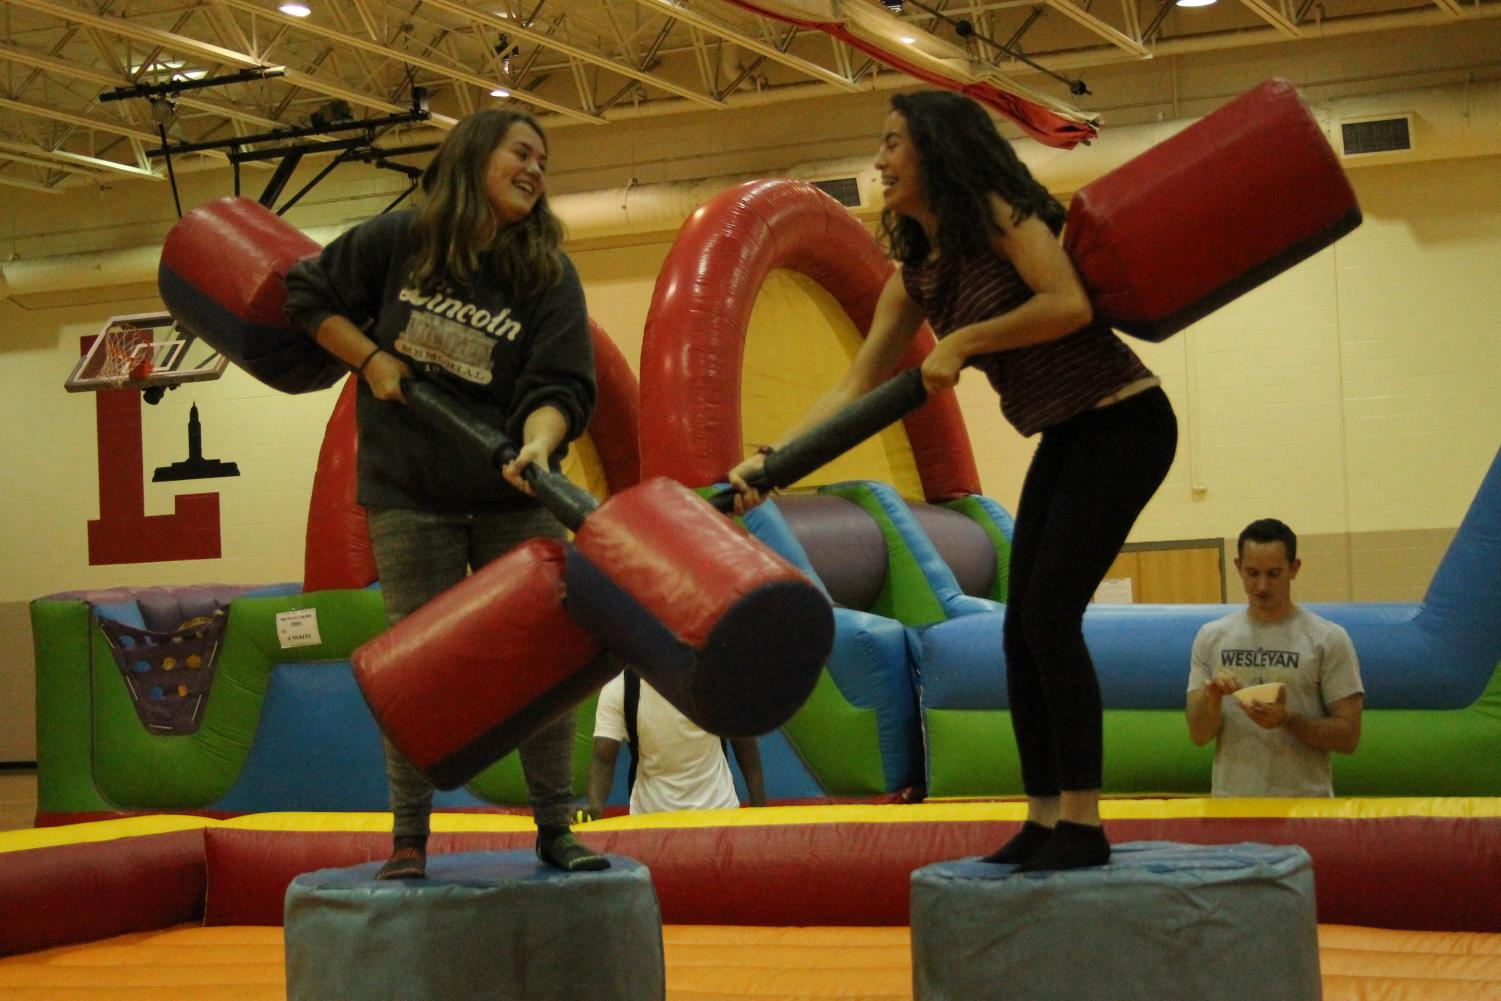 Students Cameryn Bratcher-Rosekrans (10) and Maria Garcia Castorena compete in the Joust Tournament at last year's Festivus. Food and activities are back for this year's celebration on Friday, Sept. 14, 2018. Photo by Maria Izaguirre